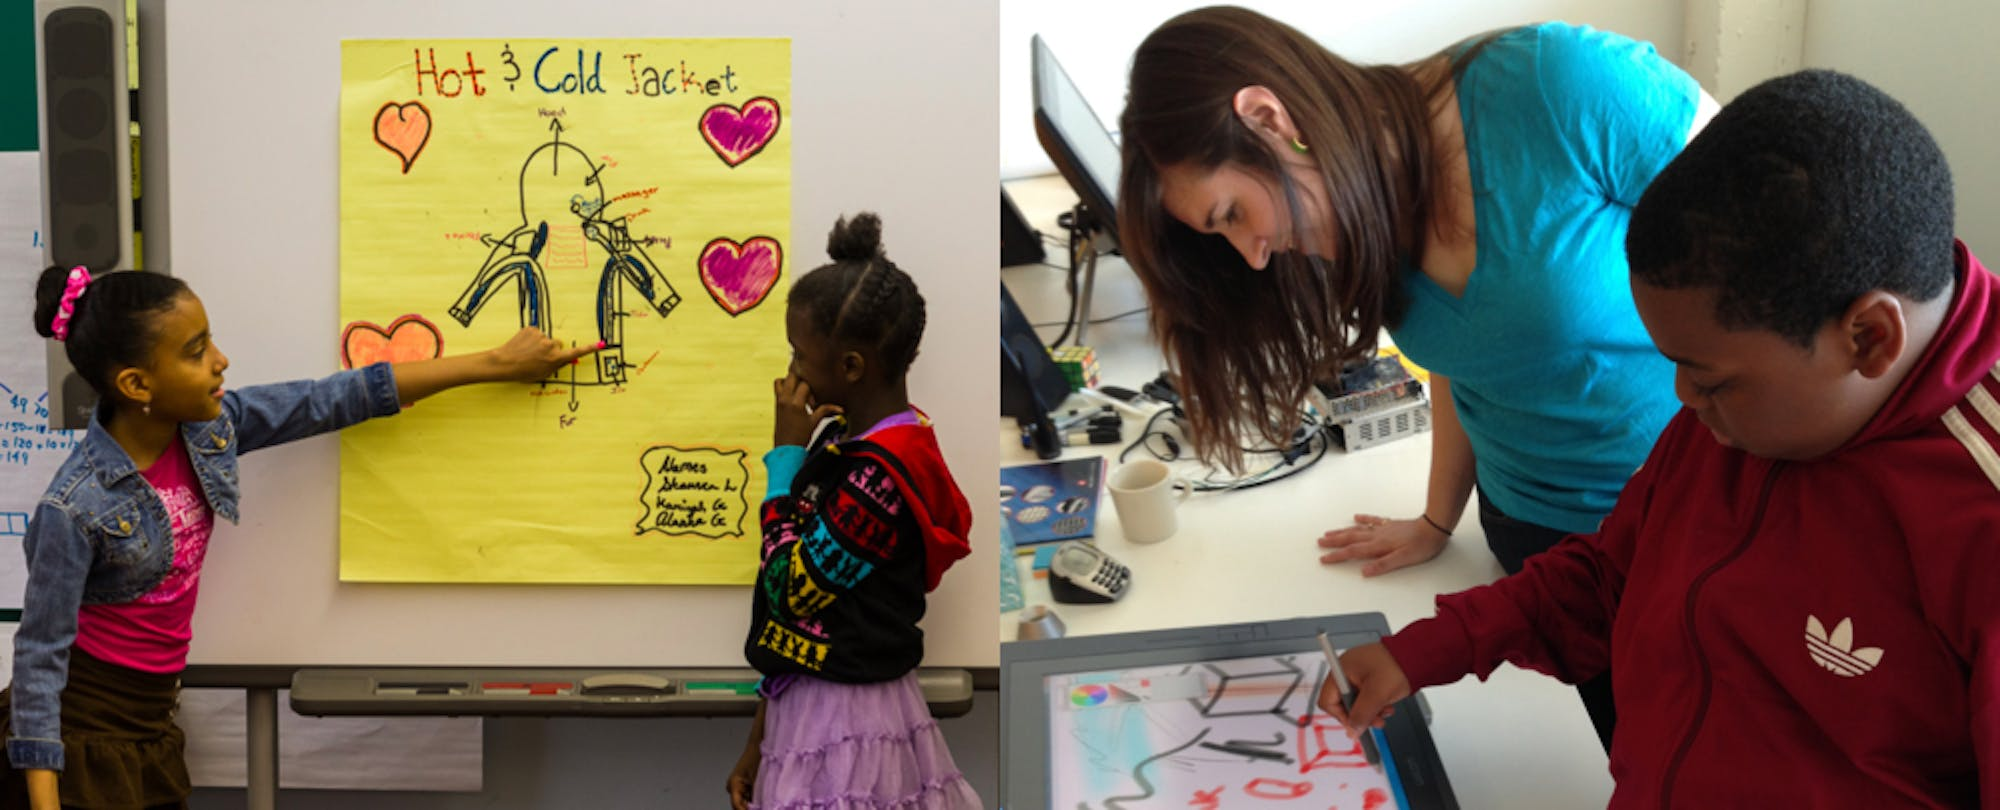 Entrepreneurship is Elementary: How a Project-Based Curriculum Catalyzed a Community